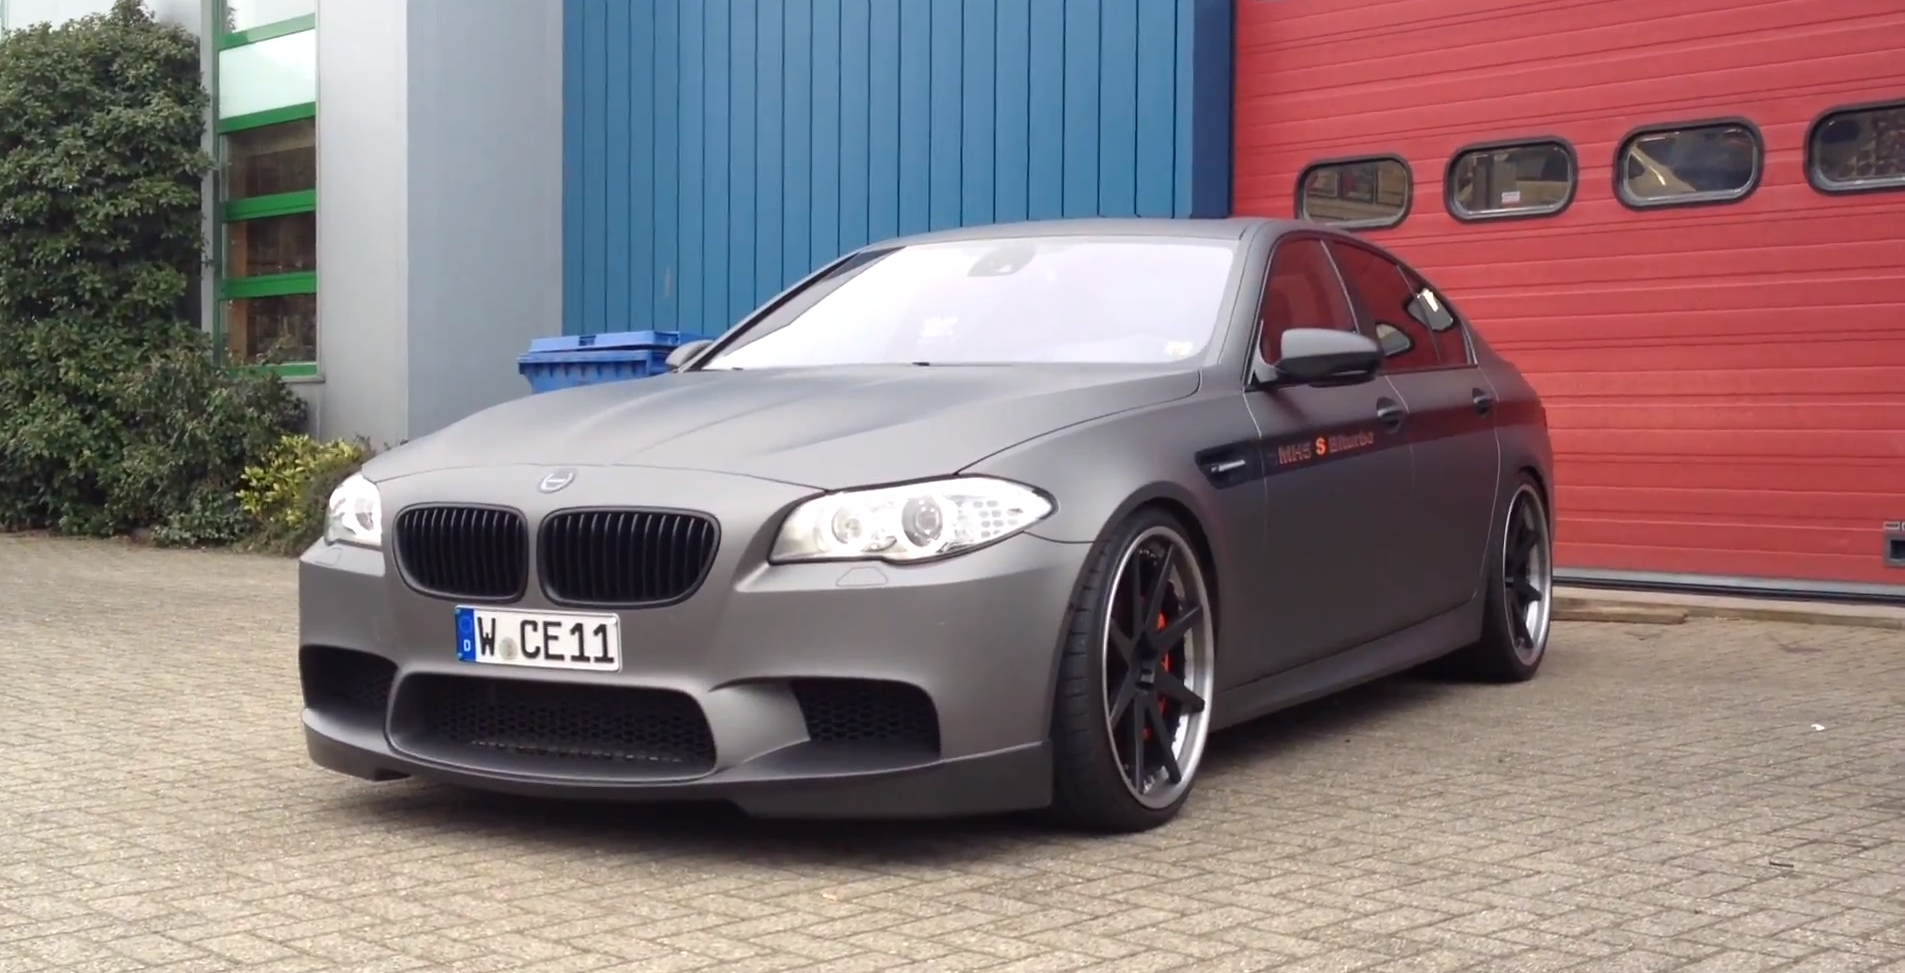 BMW 5 Series how fast is the bmw m5 World's Fastest BMW F10 M5: Manhart Racing's MH5 - autoevolution